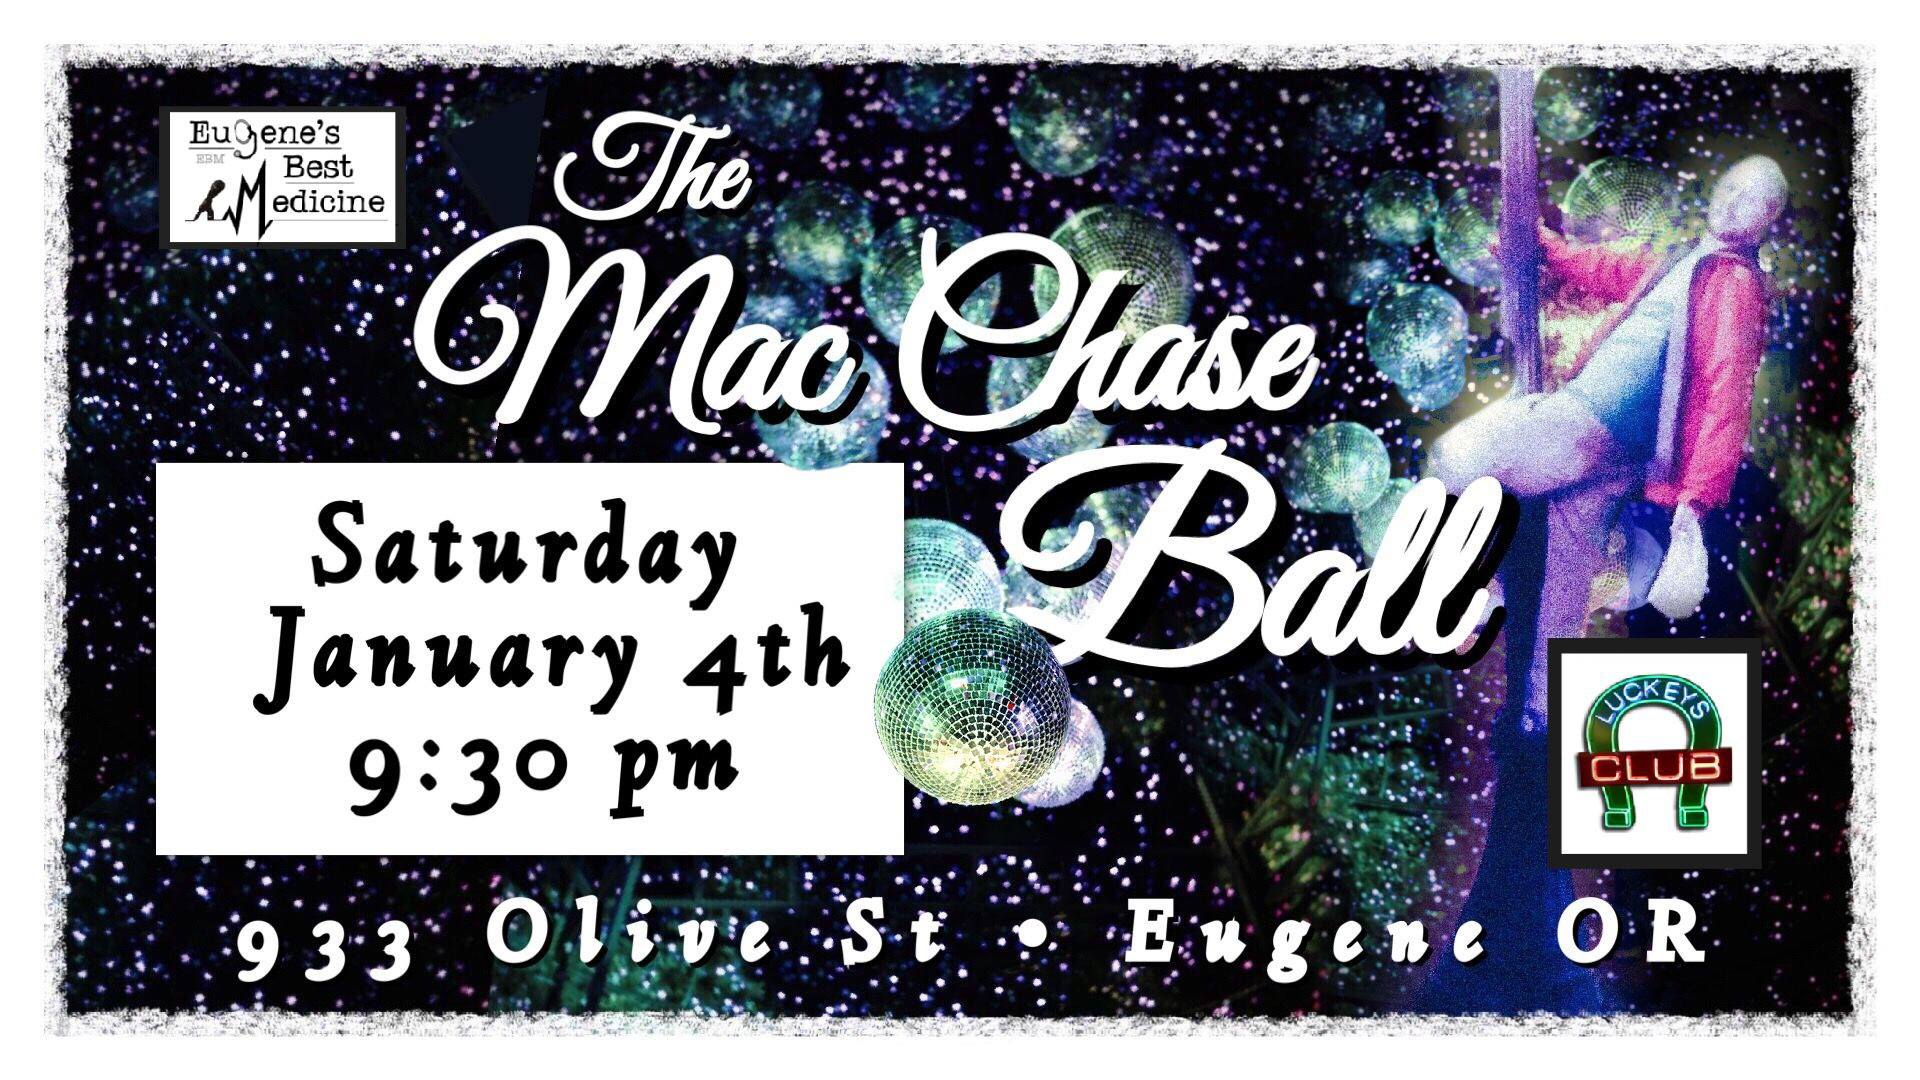 The Mac Chase Ball with Penny Glass, Max Brockmann, Mike McGowan, with The Critical Shakes